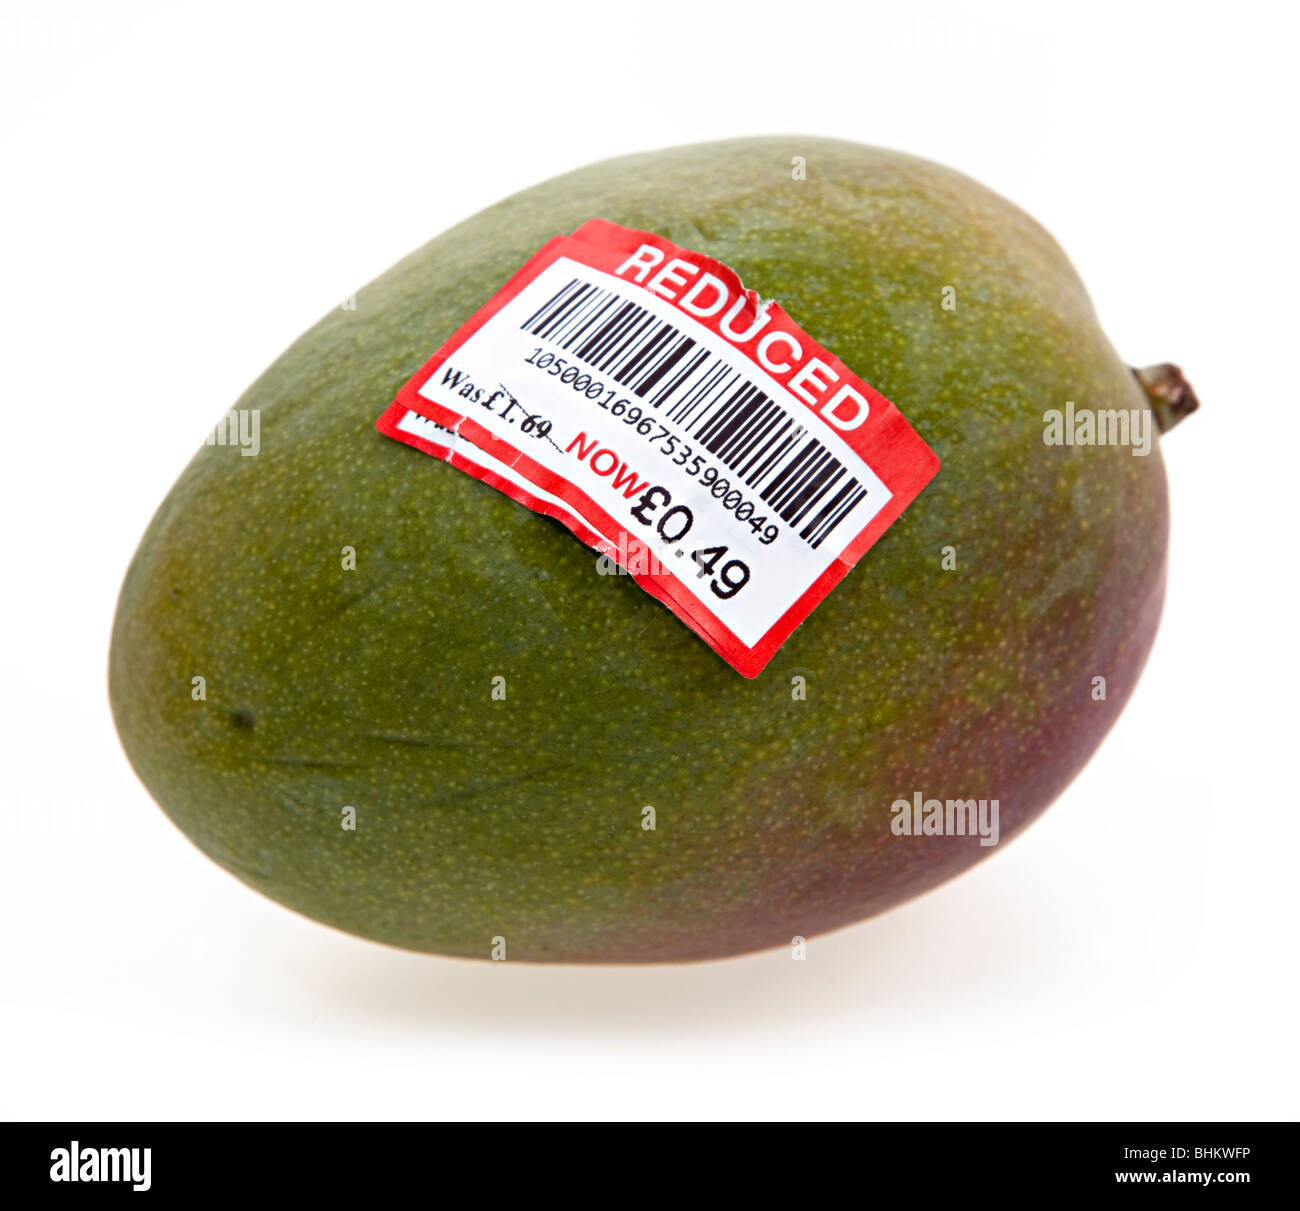 Mango with reduced price barcode and sticker price UK - Stock Image